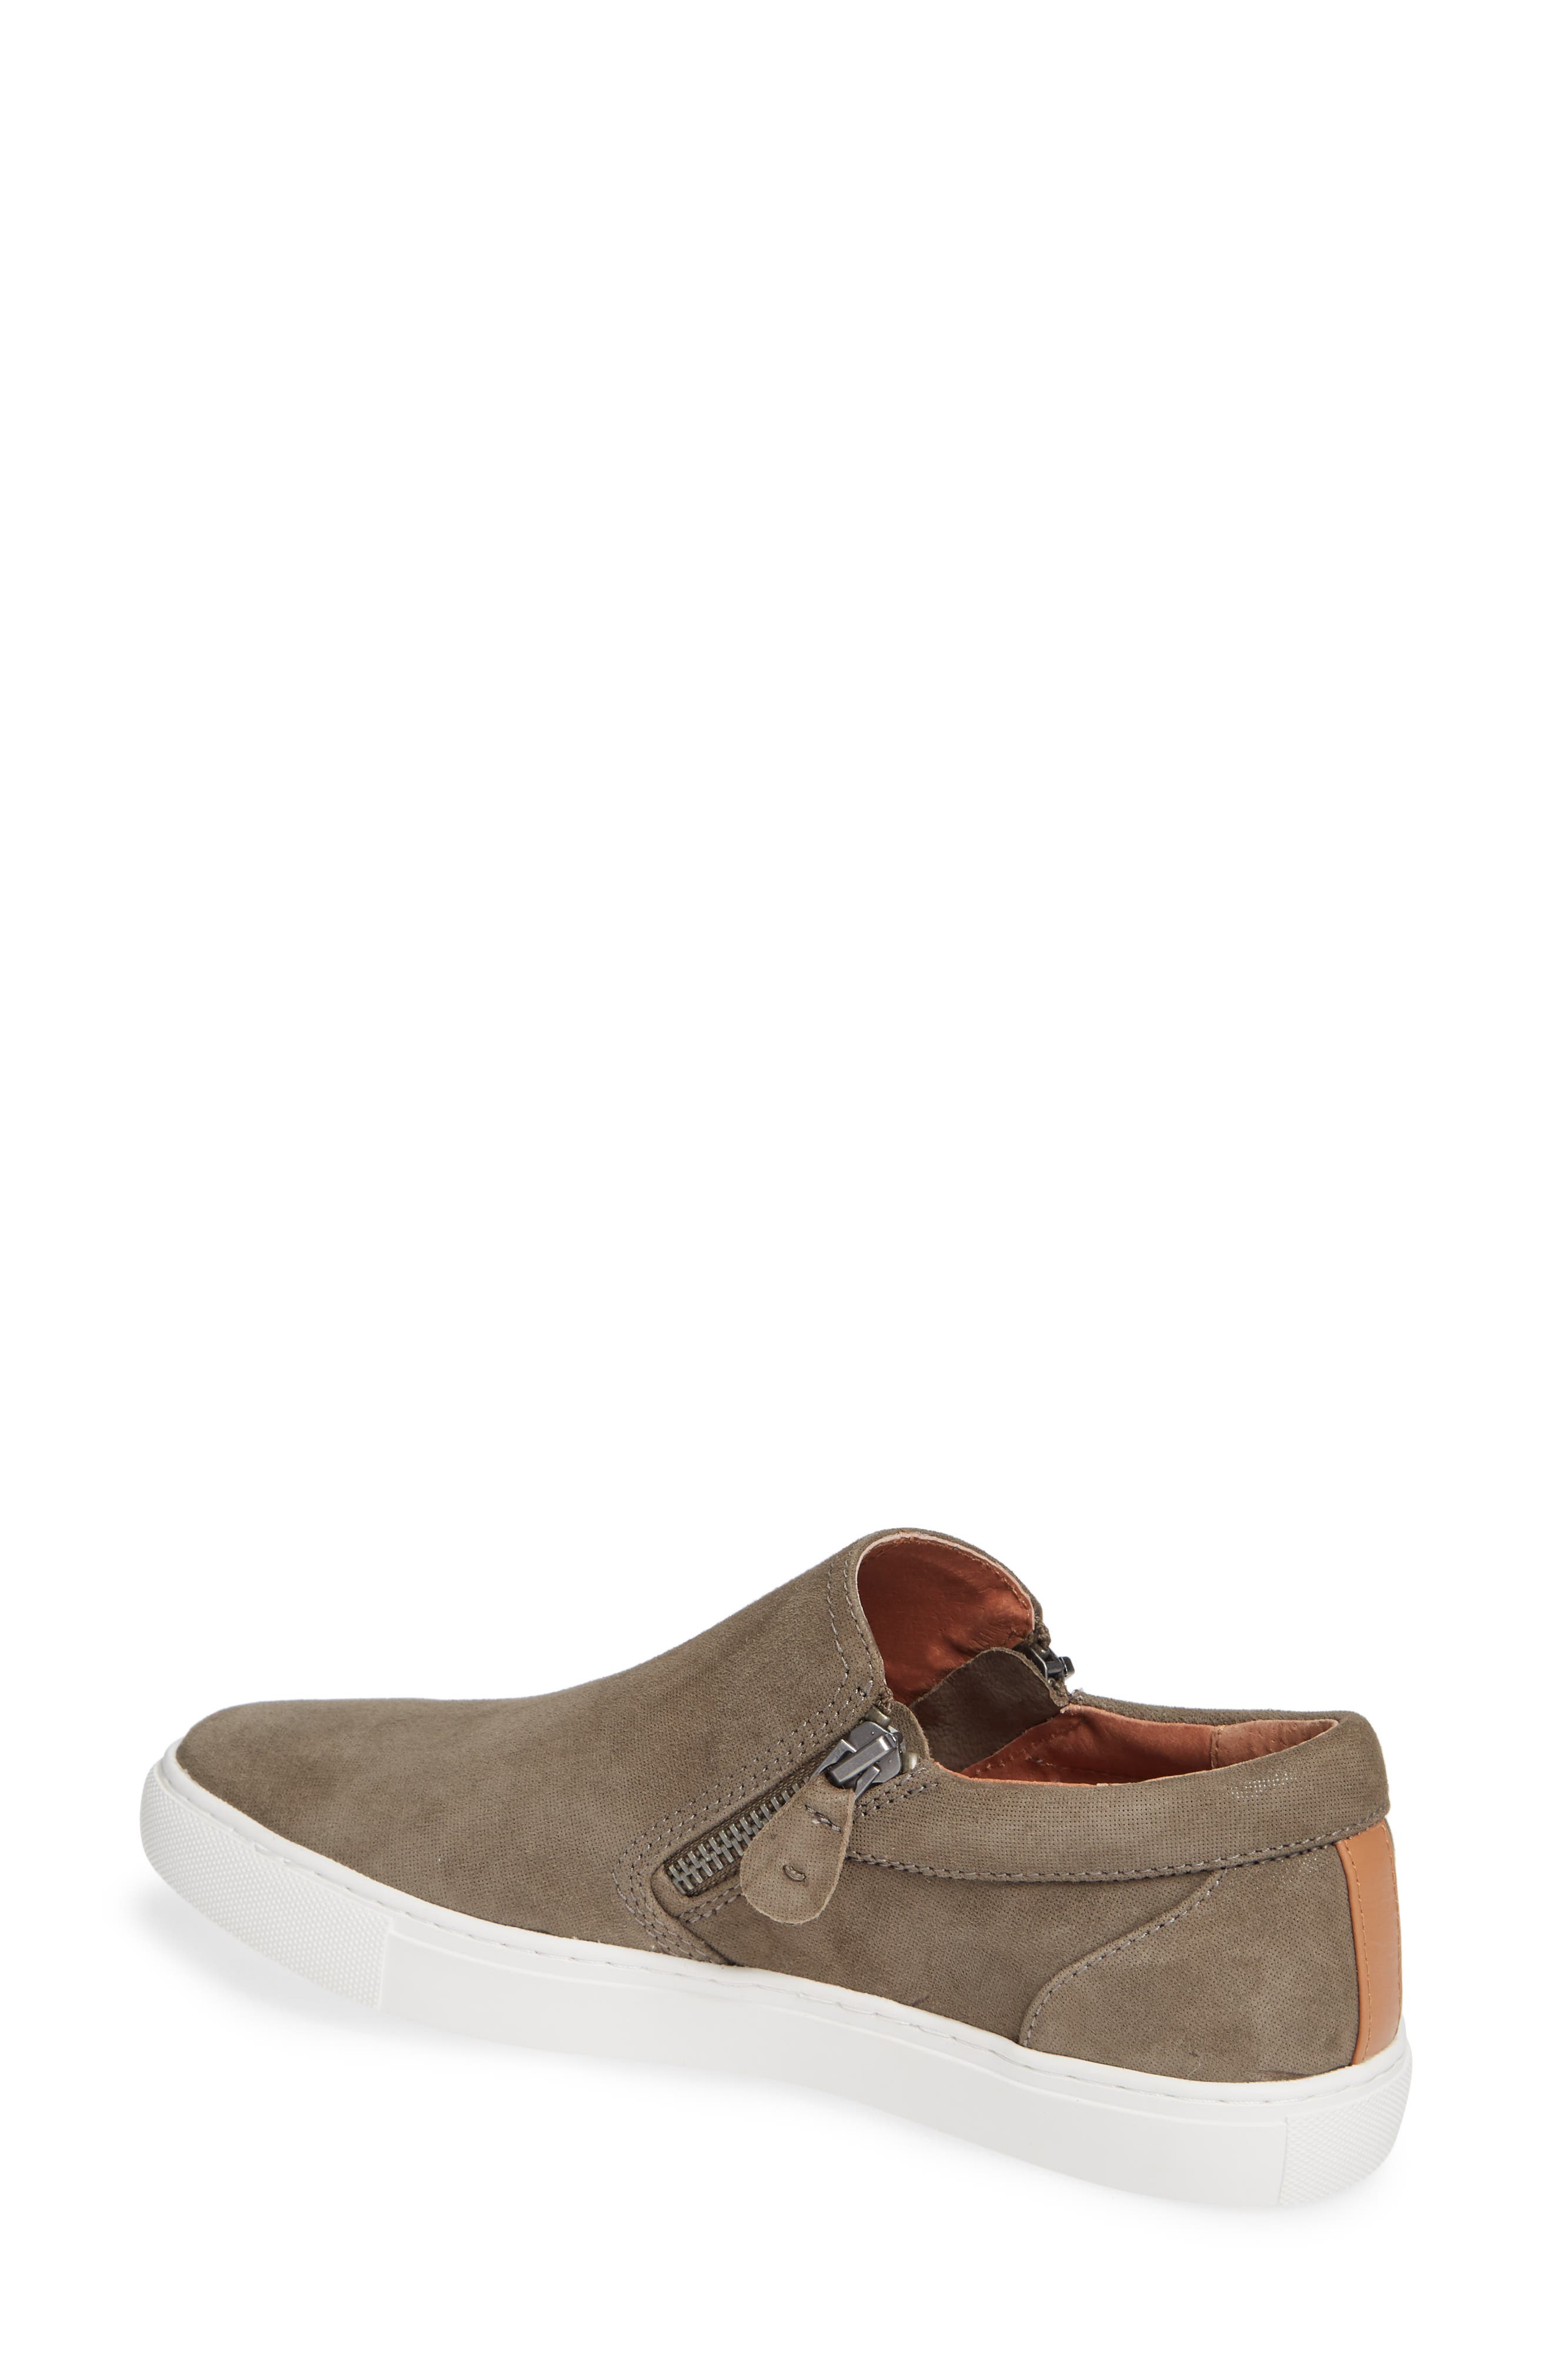 GENTLE SOULS BY KENNETH COLE, Lowe Sneaker, Alternate thumbnail 2, color, CEMENT SUEDE